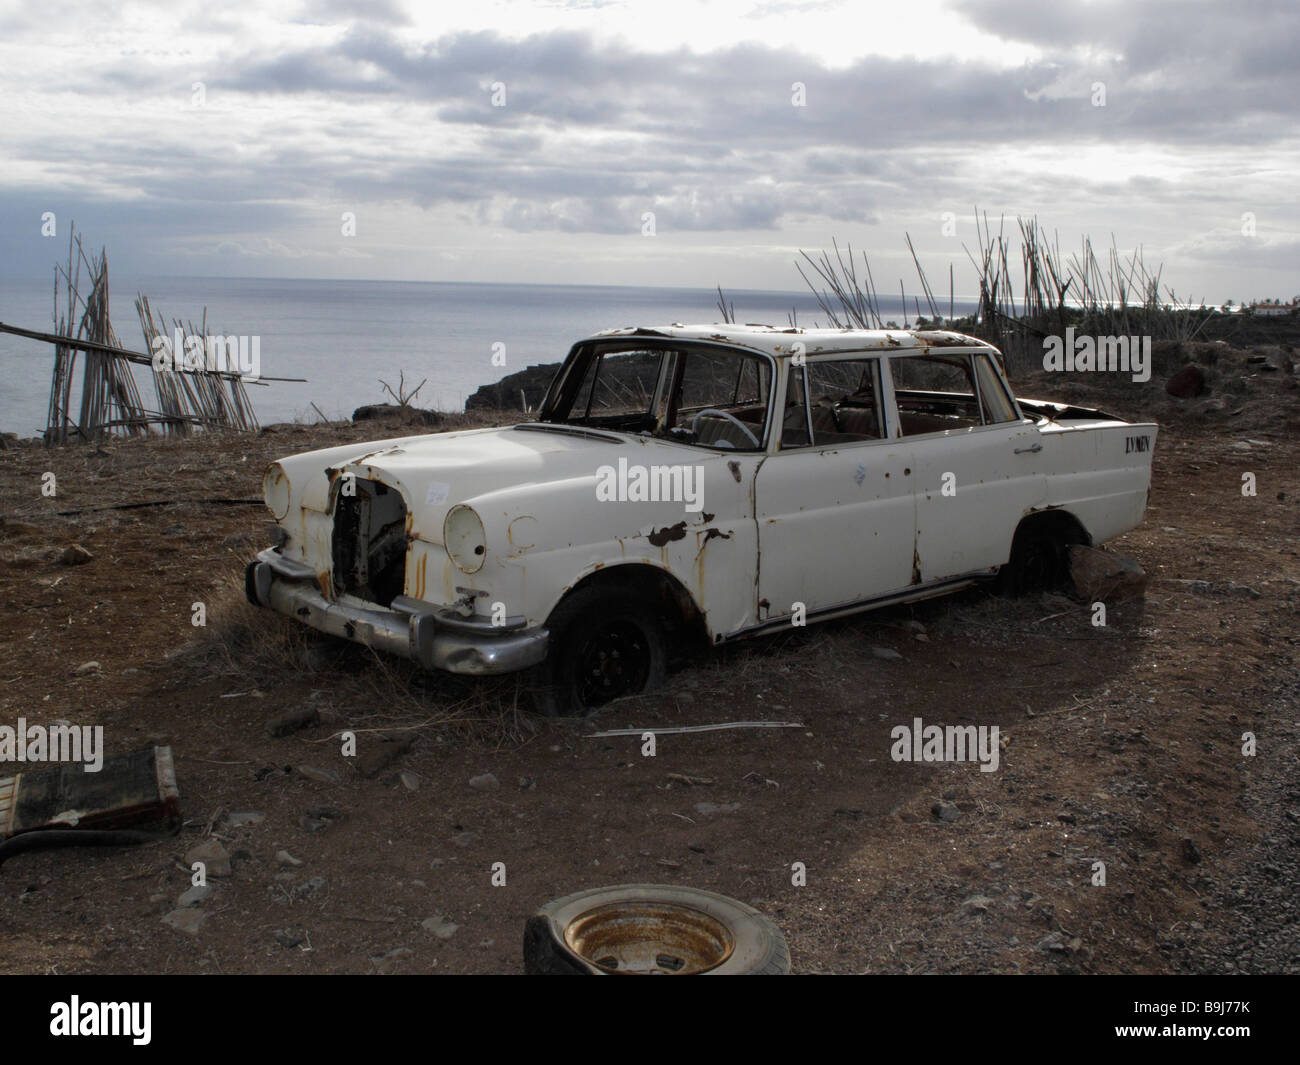 Scrapped Mercedes near Playa Santiago, La Gomera, Canary Islands, Spain, Europe Stock Photo